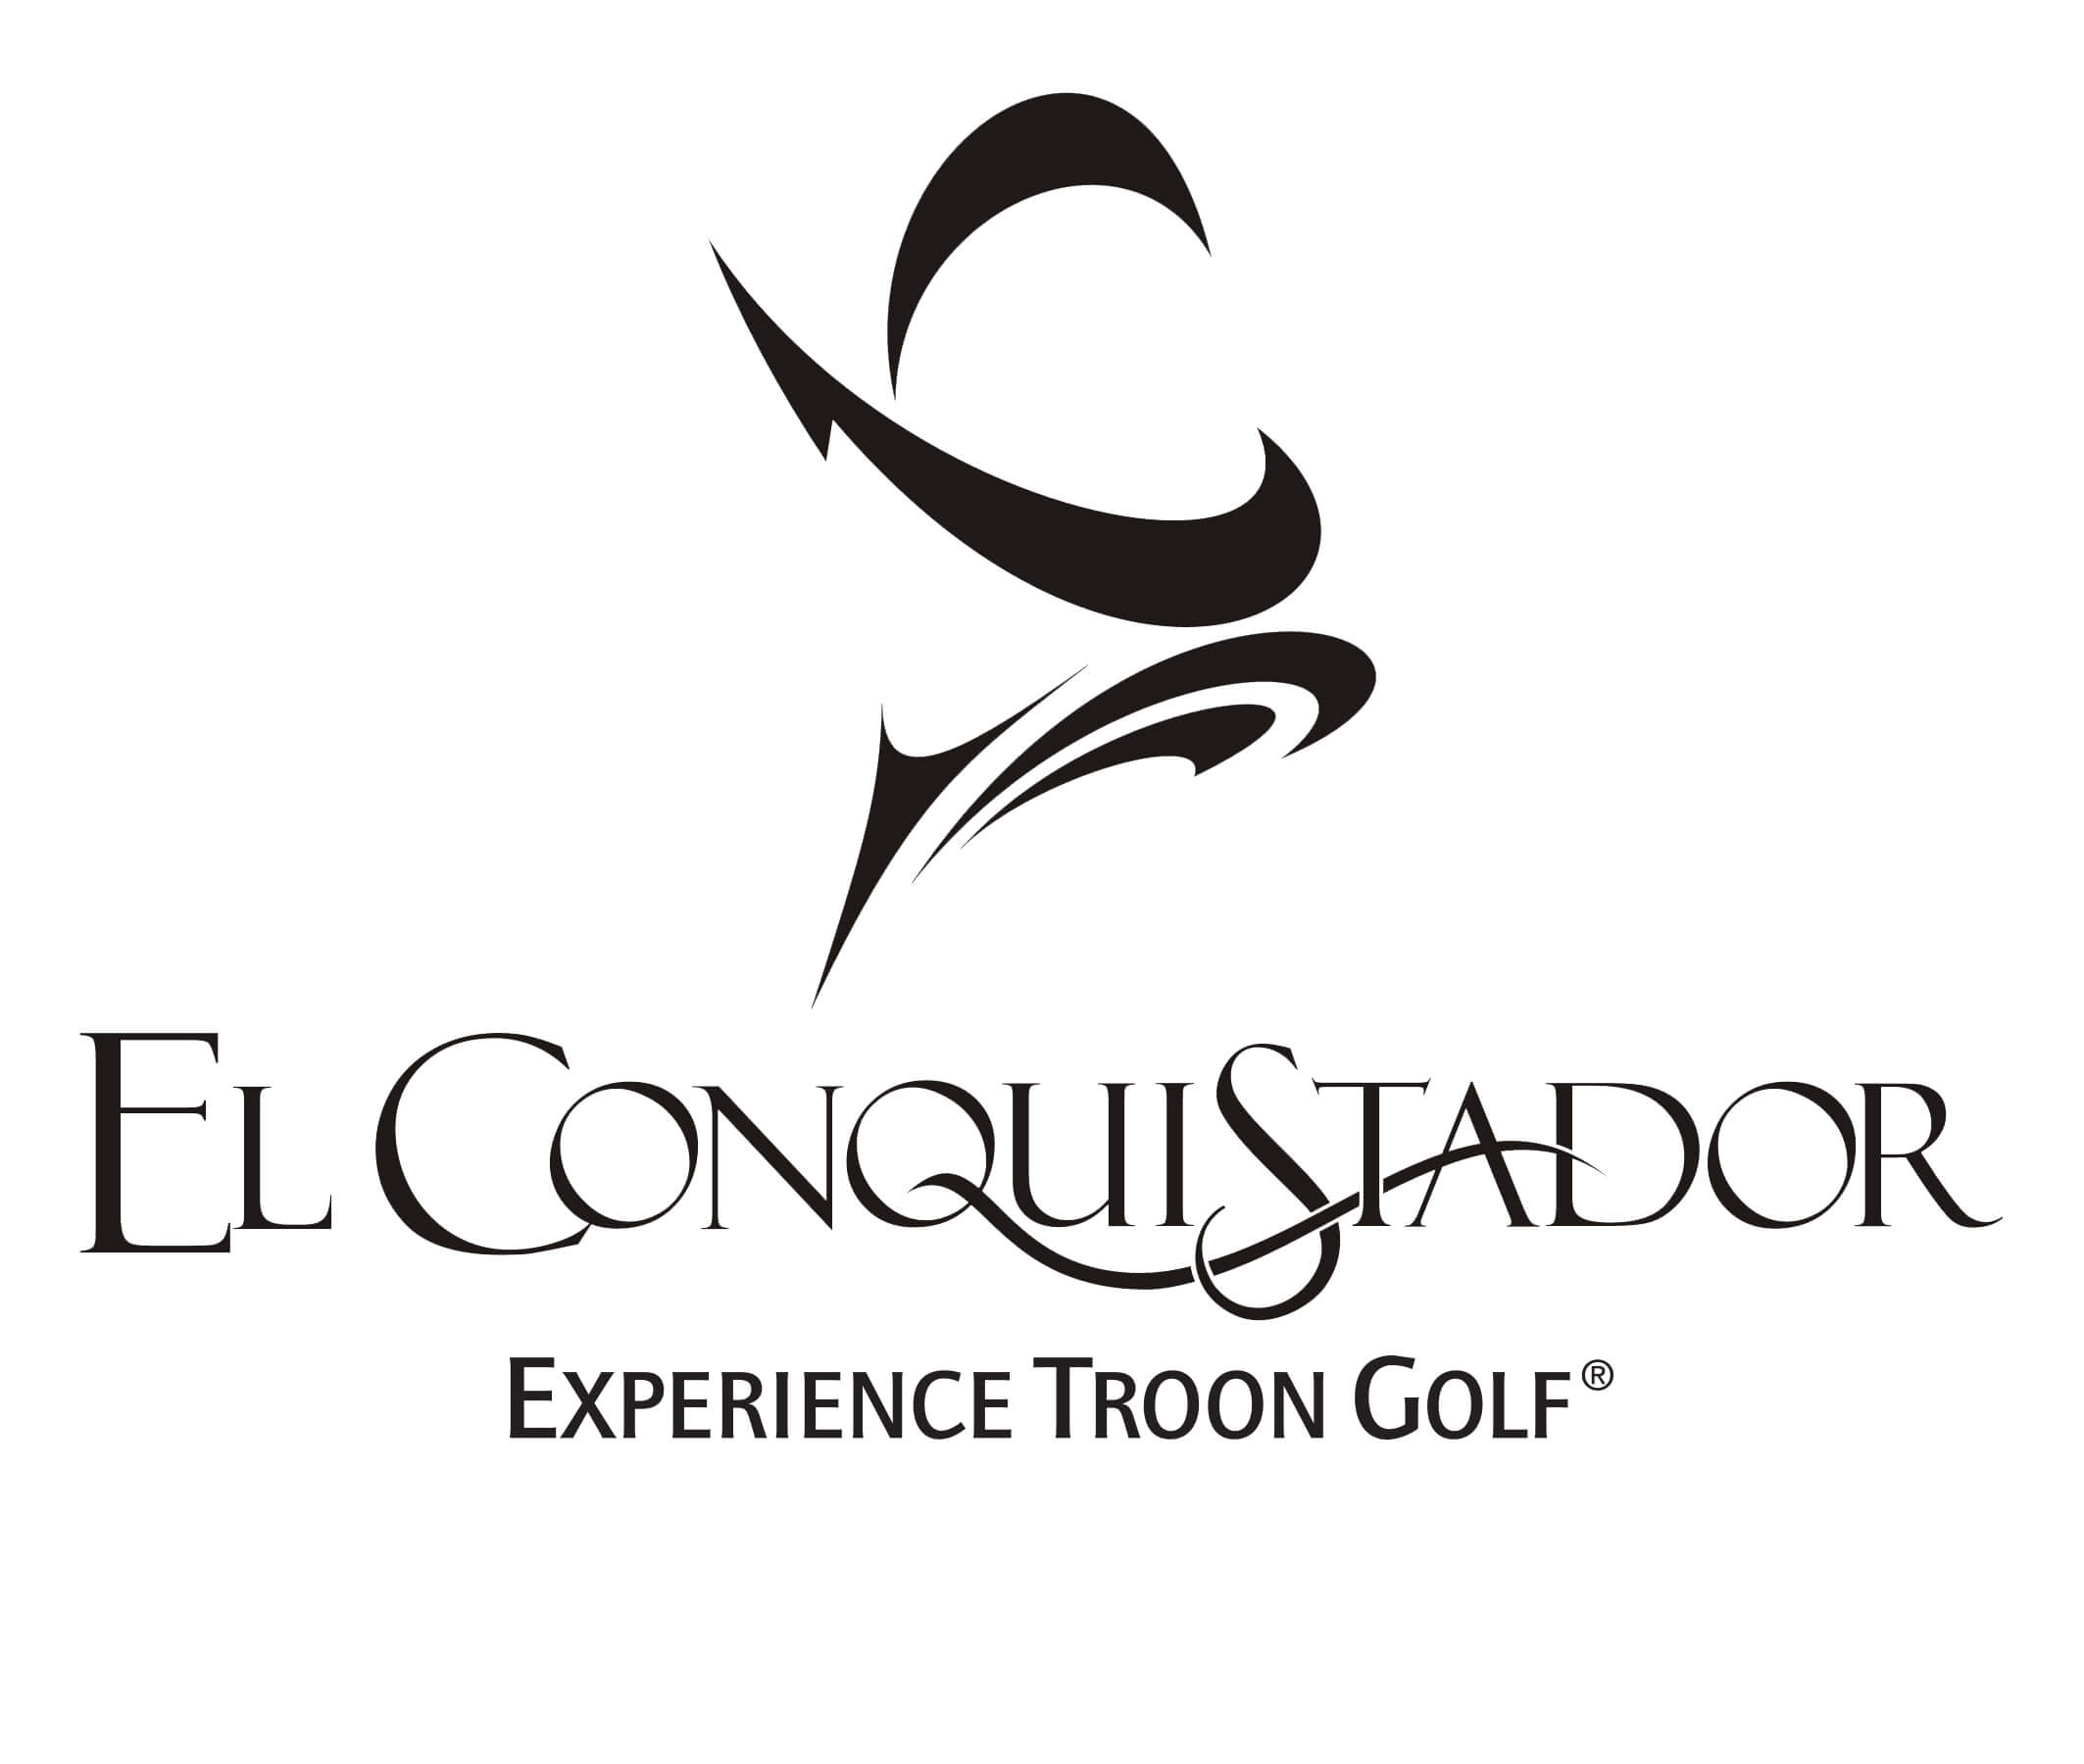 El Conquistador Golf & Tennis